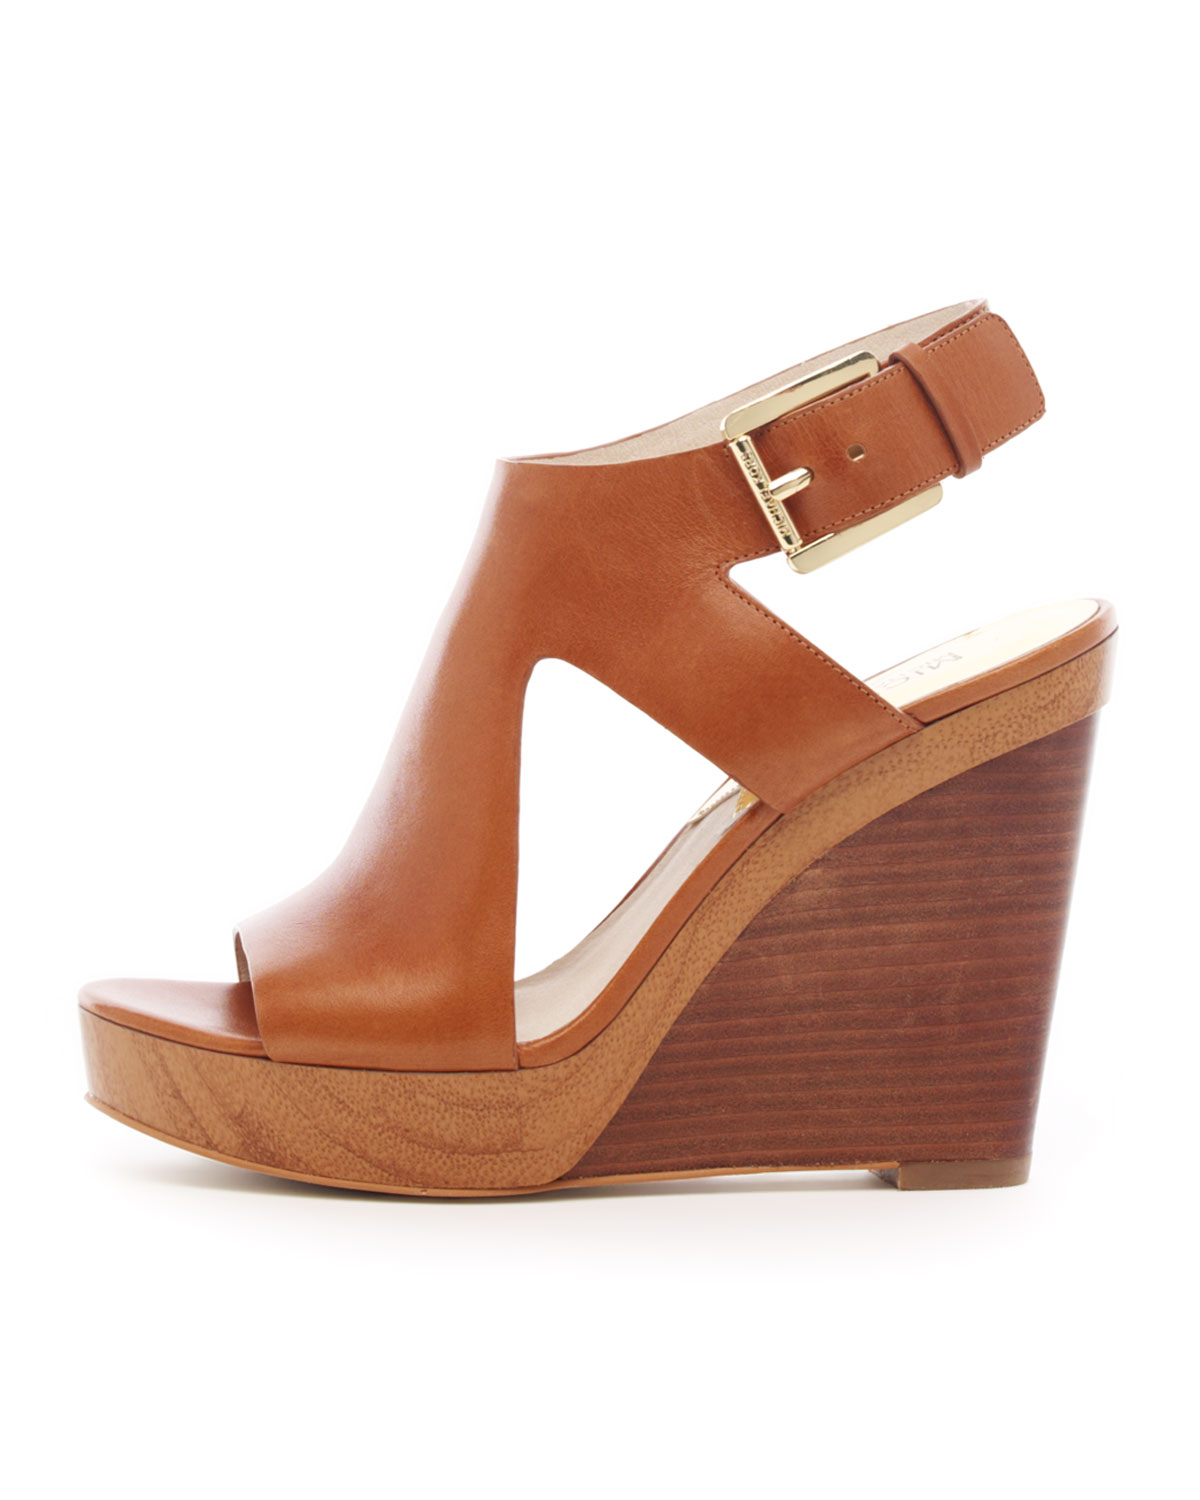 82e601bd67c6 Lyst - Michael Kors Josephine Leather Wedge Sandal in Brown